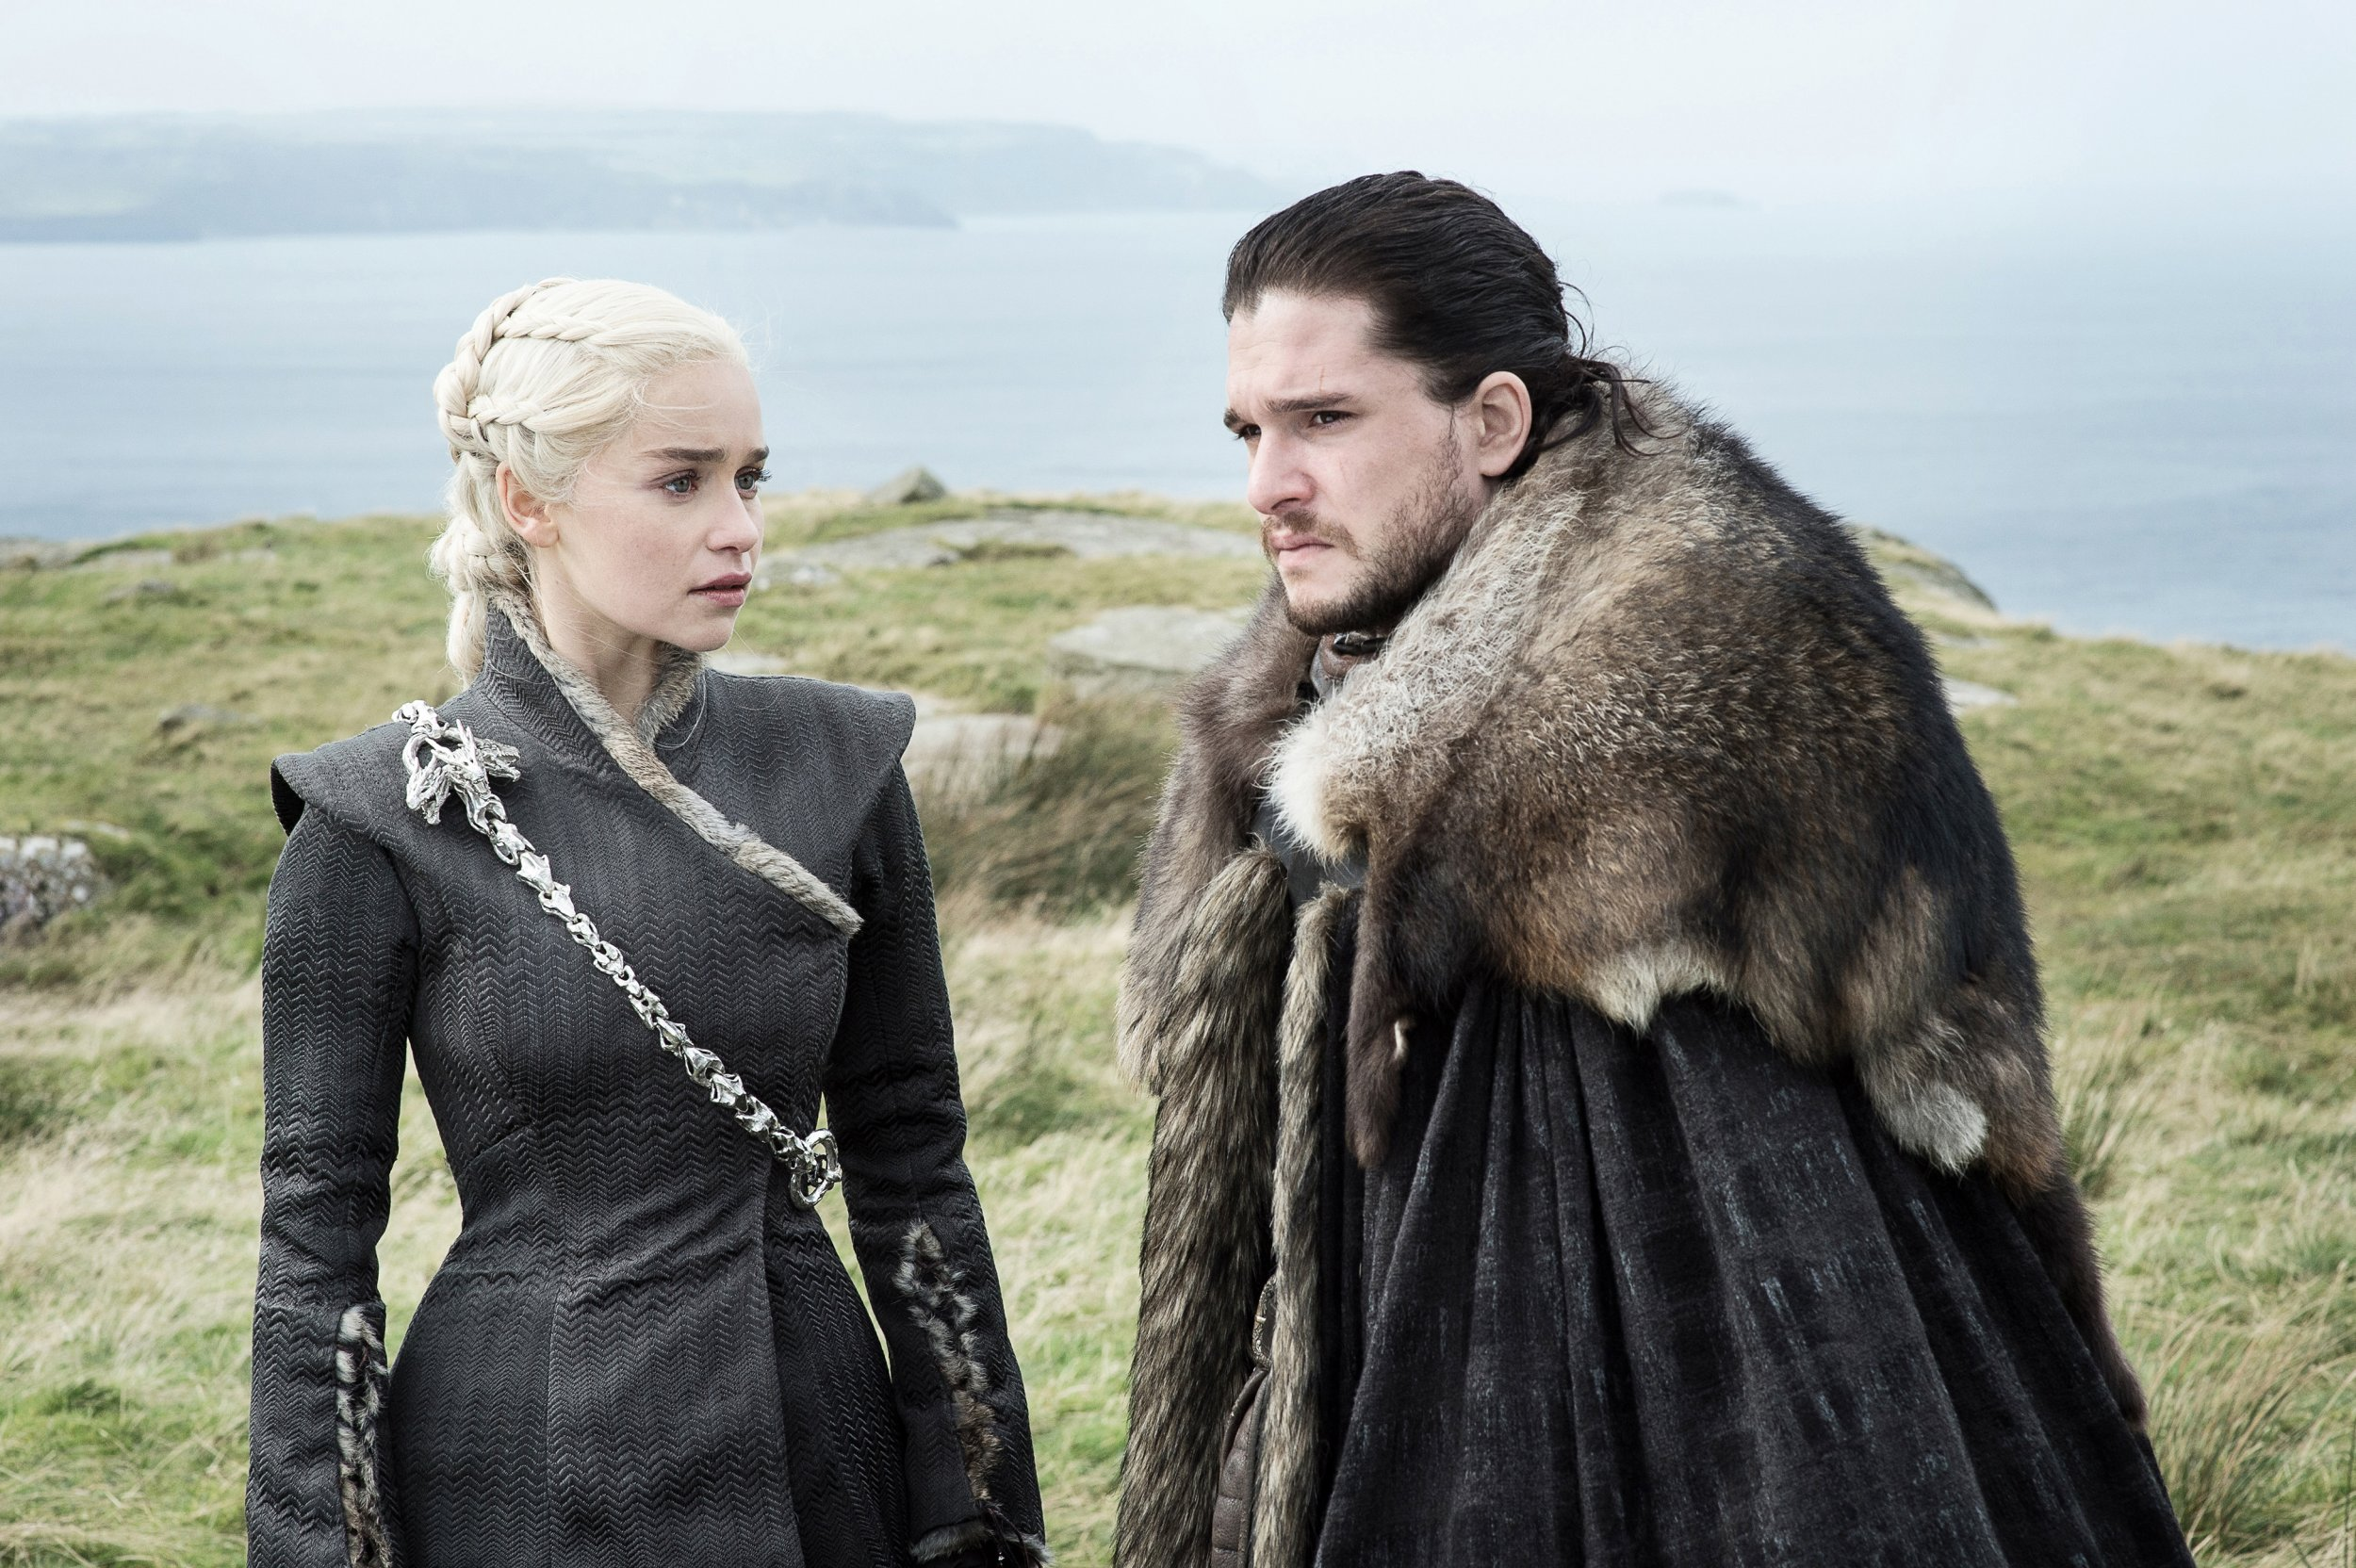 Game of Thrones incest? Jon Snow and Daenerys